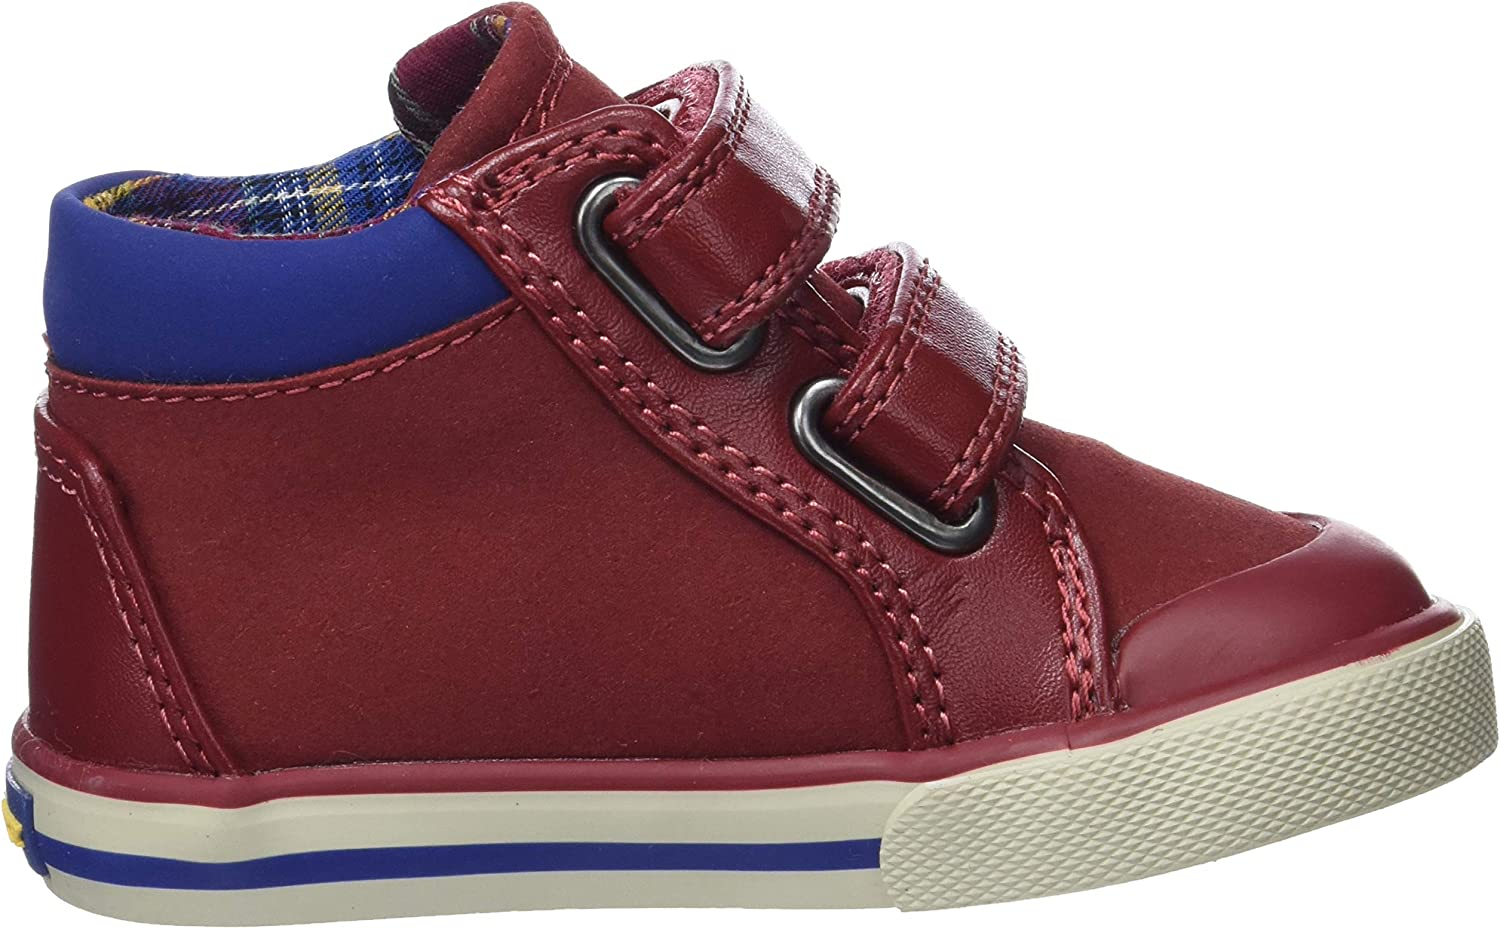 Pablosky Boys 951860 Low-Top Sneakers